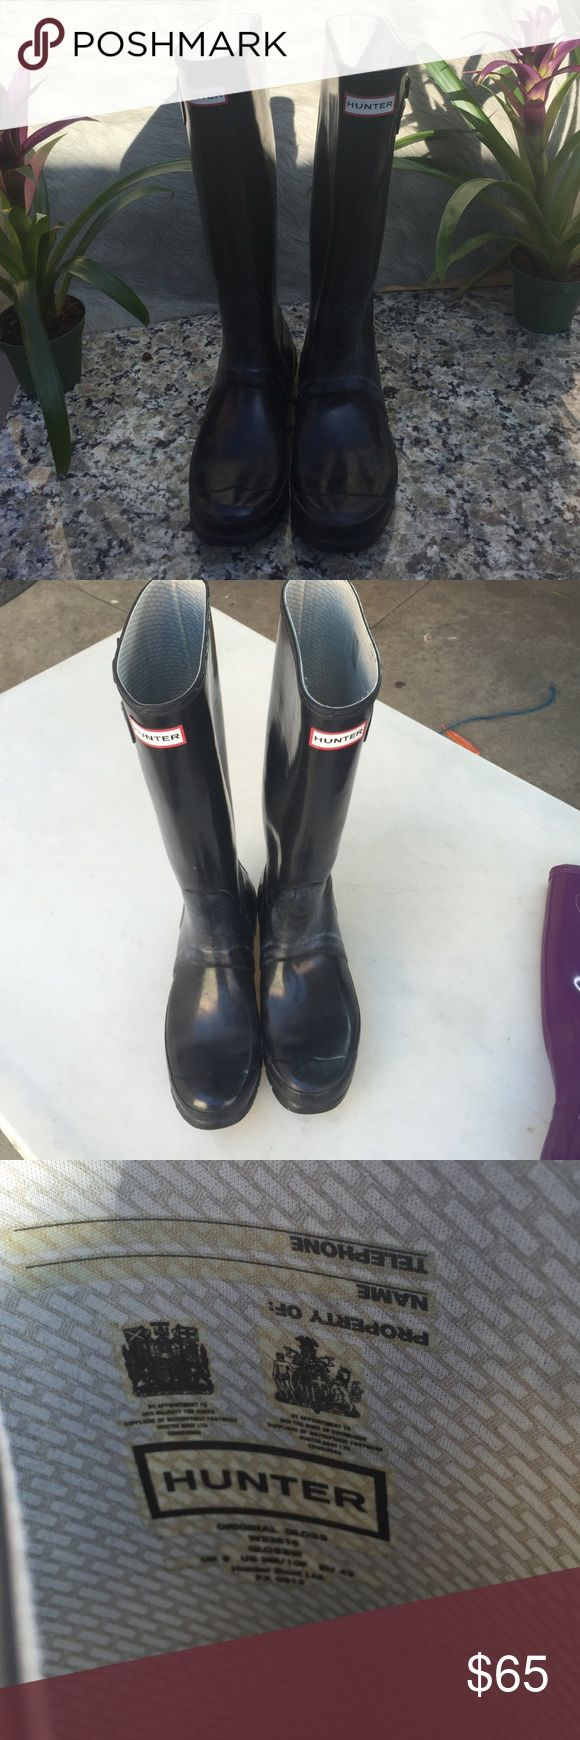 Hunter Rain Boots Preloved with visual signs of wear, can be cleaned but I will leave that up to you. Good condition, stylish and will keep your feet dry.size UK 8 US 9M/10F EU42 Hunter Boots Shoes Winter & Rain Boots